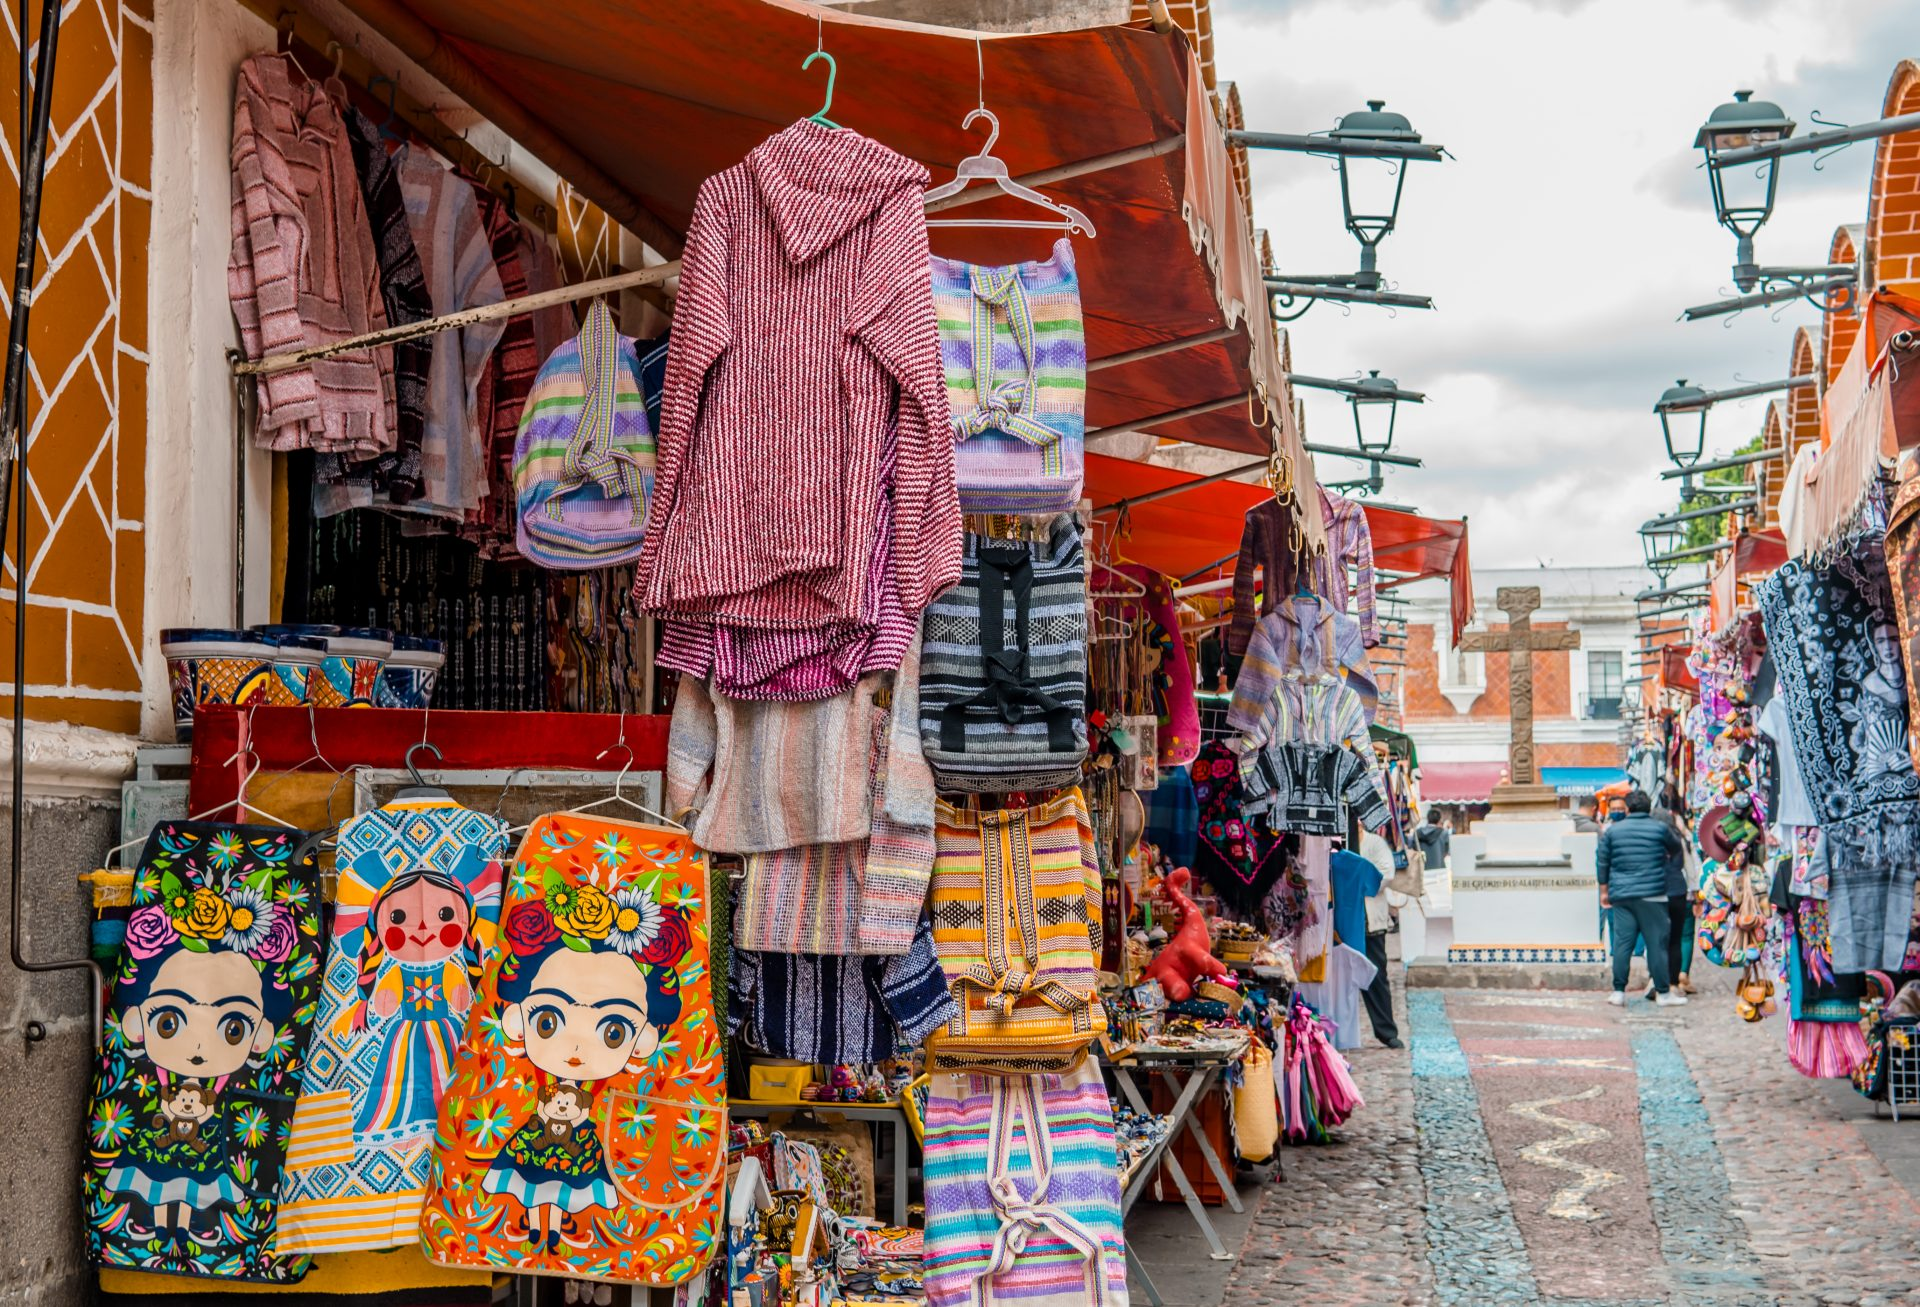 Best Things to do in Puebla, Mexico - Parian handicraft Market